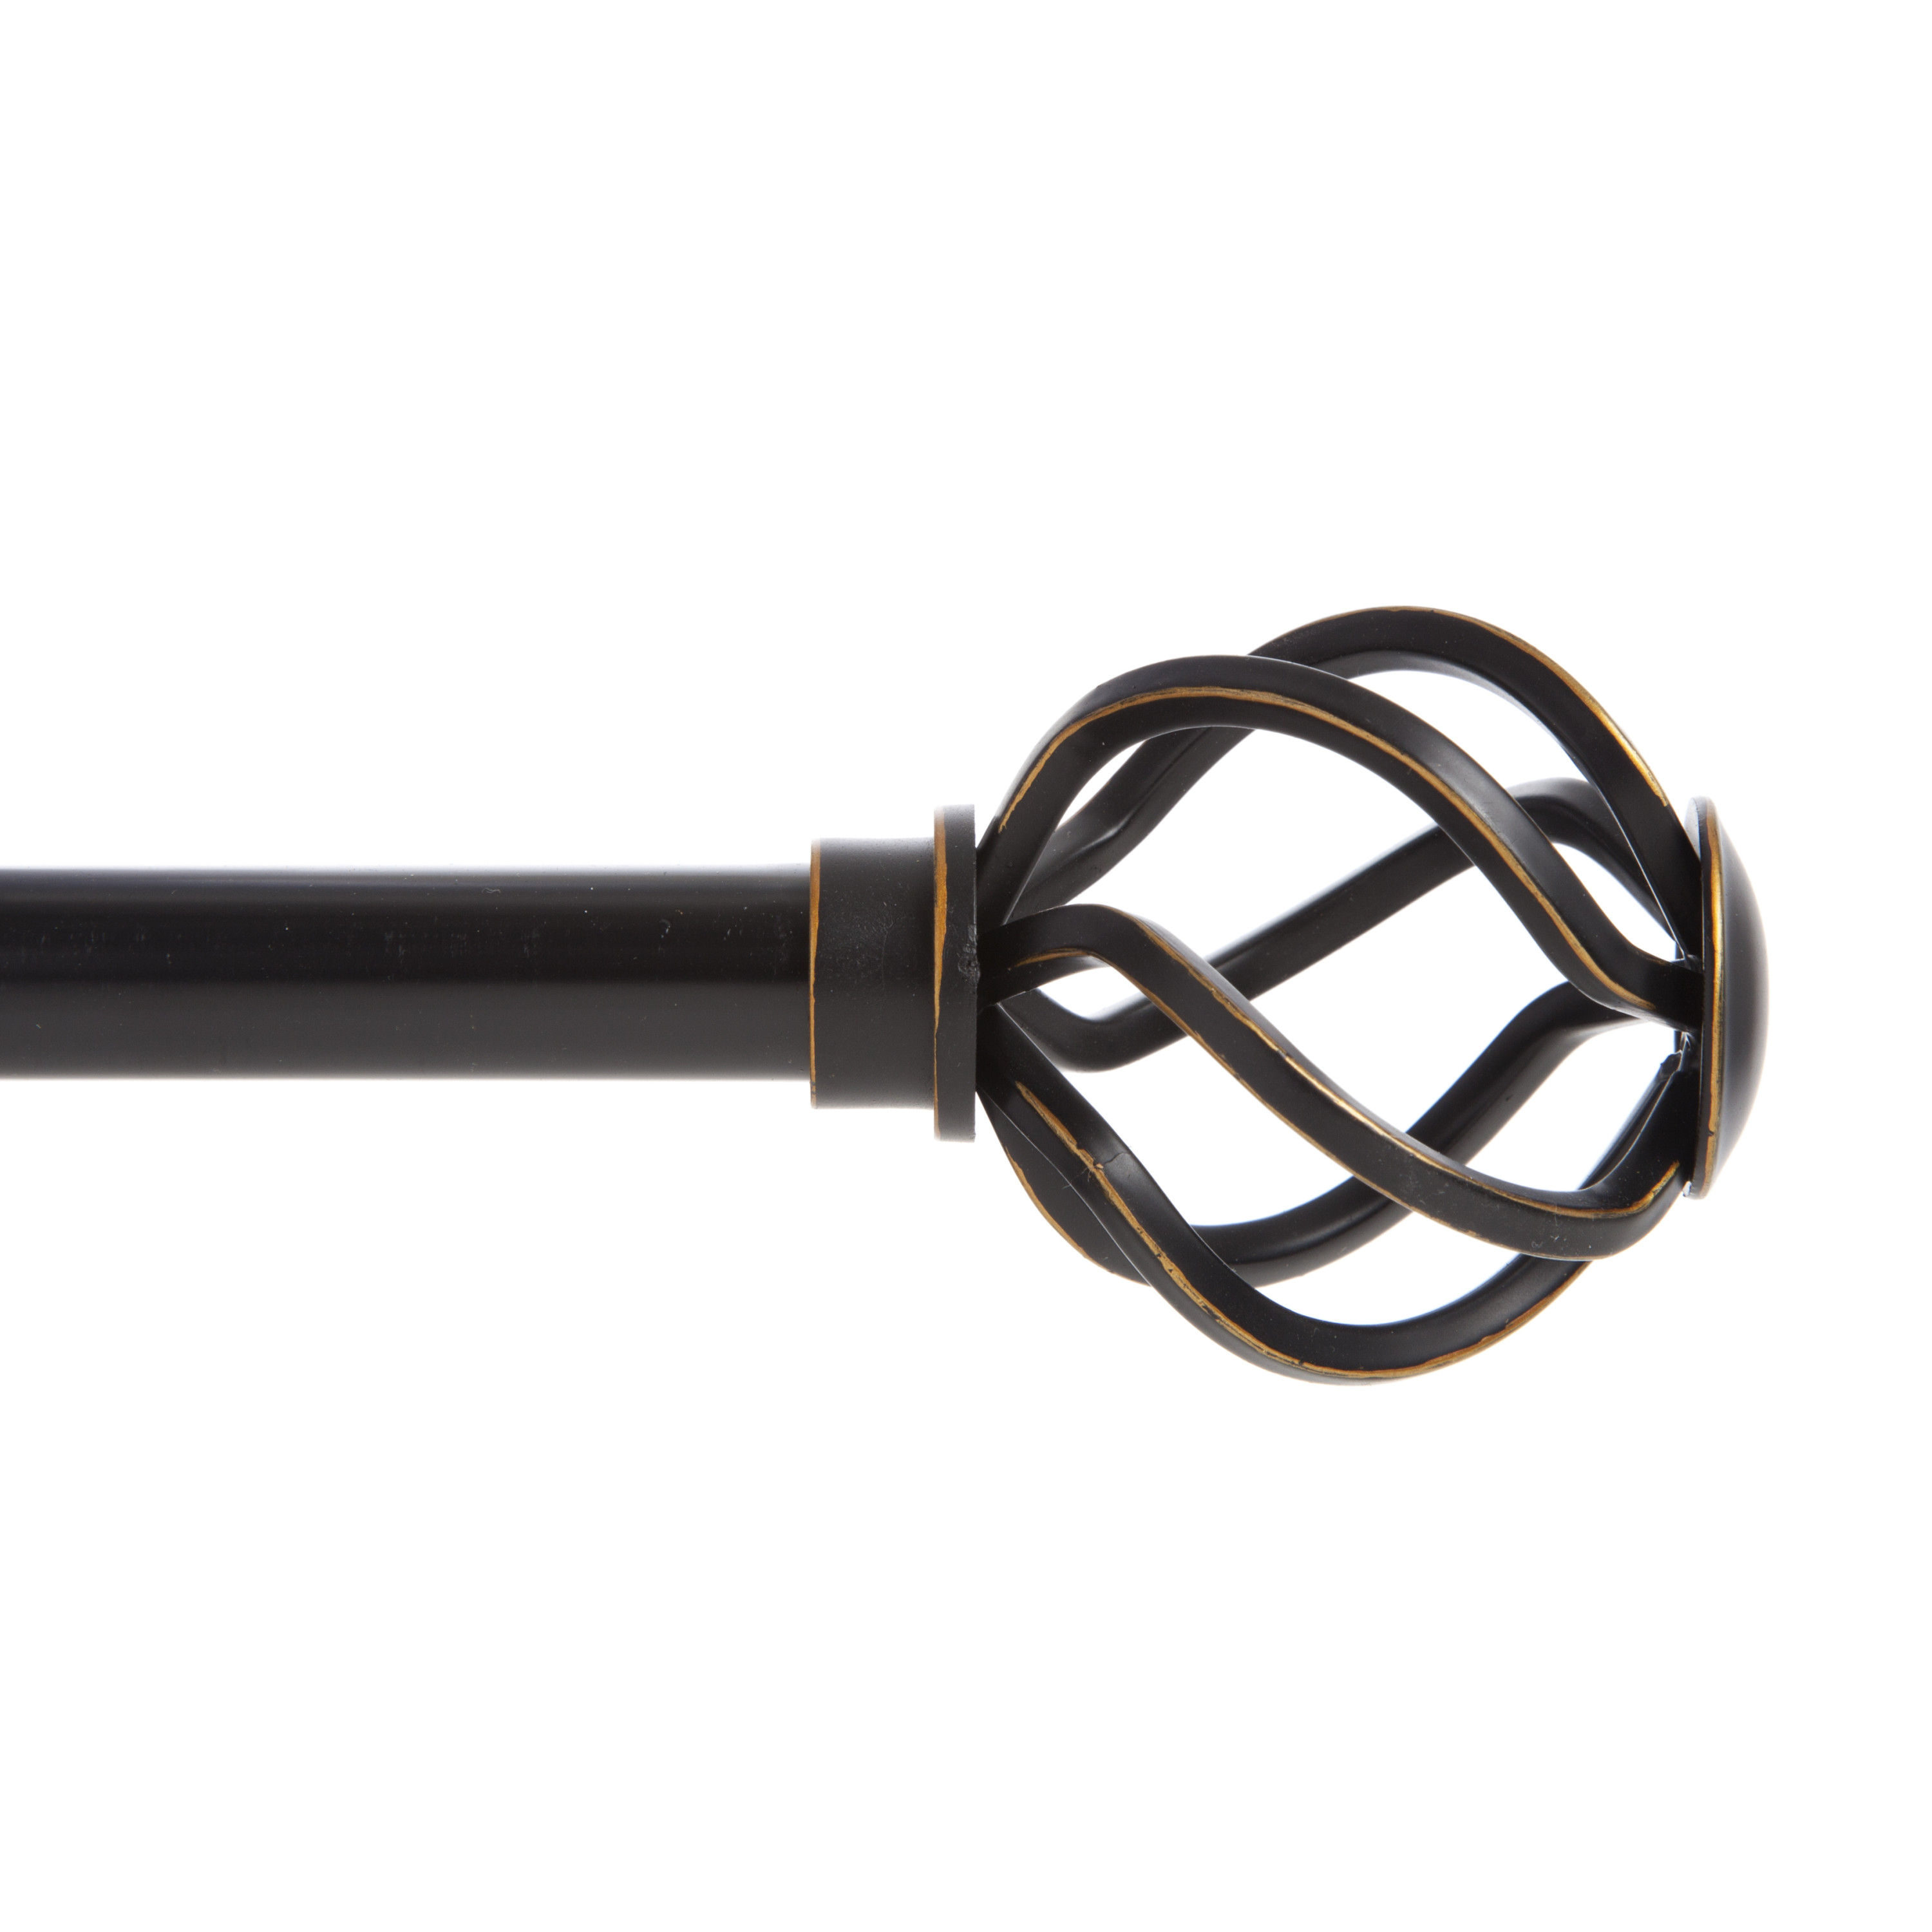 "Better Homes & Gardens 5/8"" Cage Decorative Curtain Rod, 48-84"", Oil Rubbed Bronze"